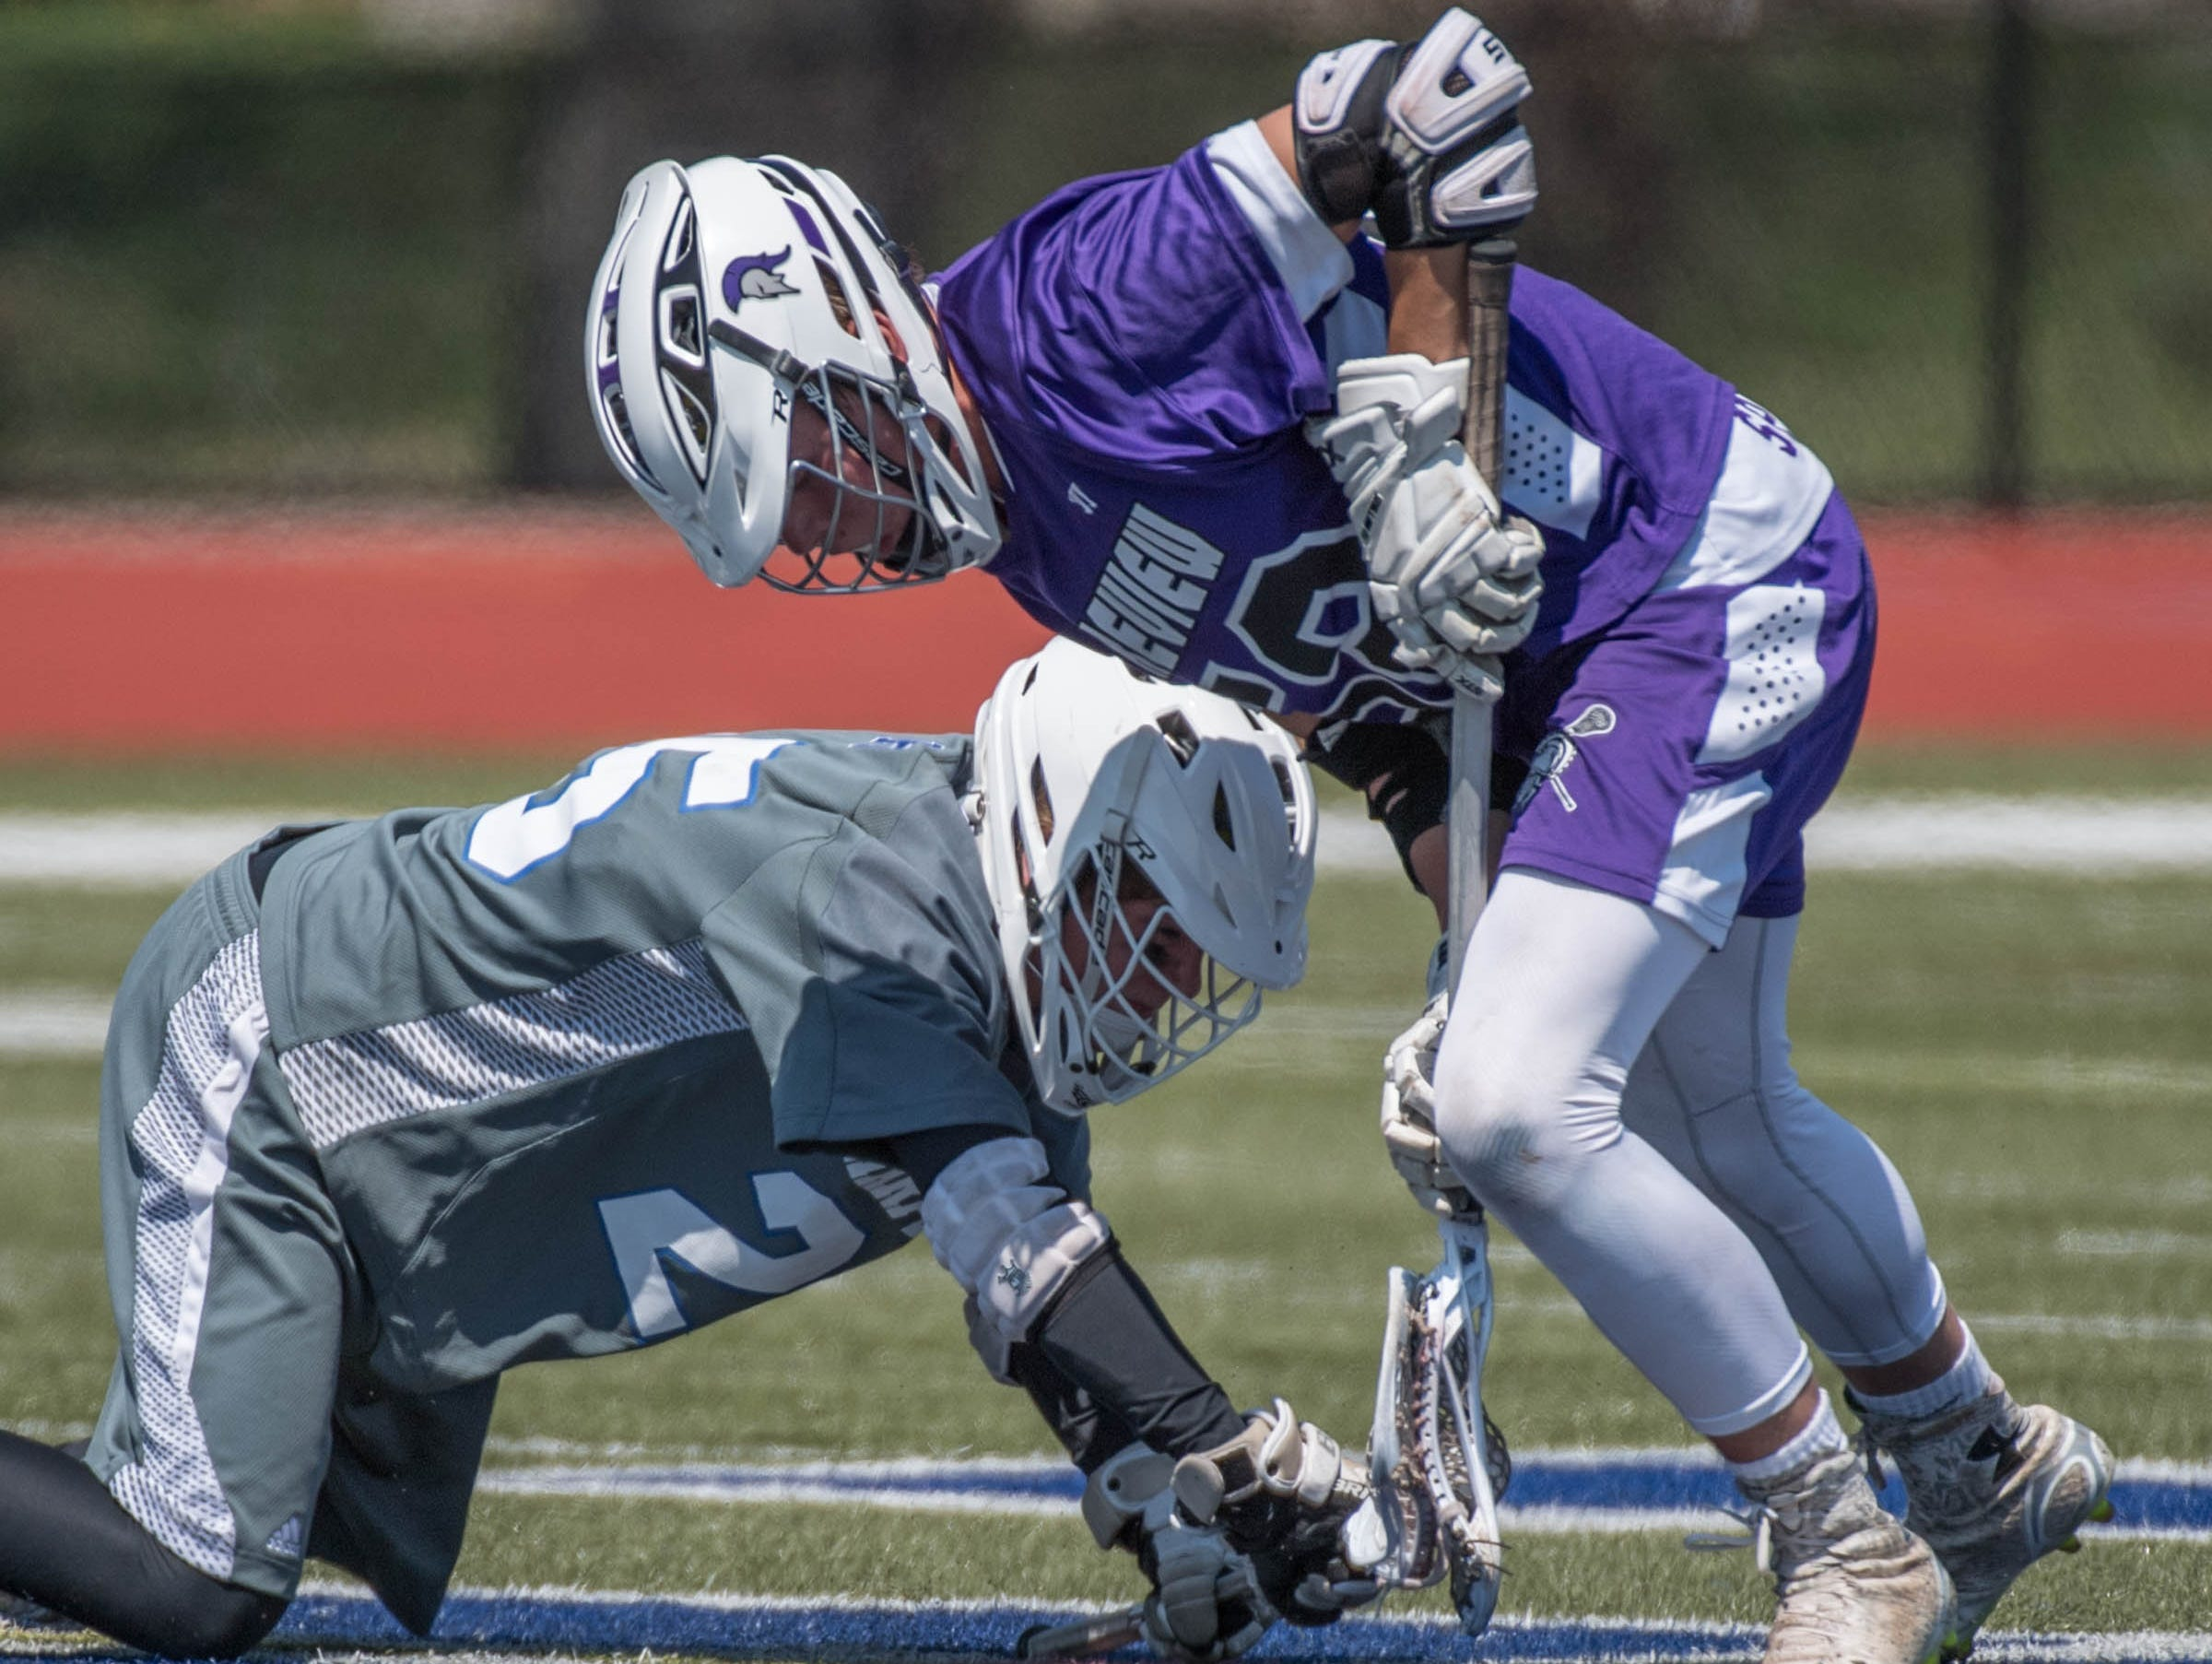 Lakeview's Jerry Haadsma (52) digs for the ball against Harper Creek's Alex Phillips (25) in the All City Lacrosse Tournament on Saturday.